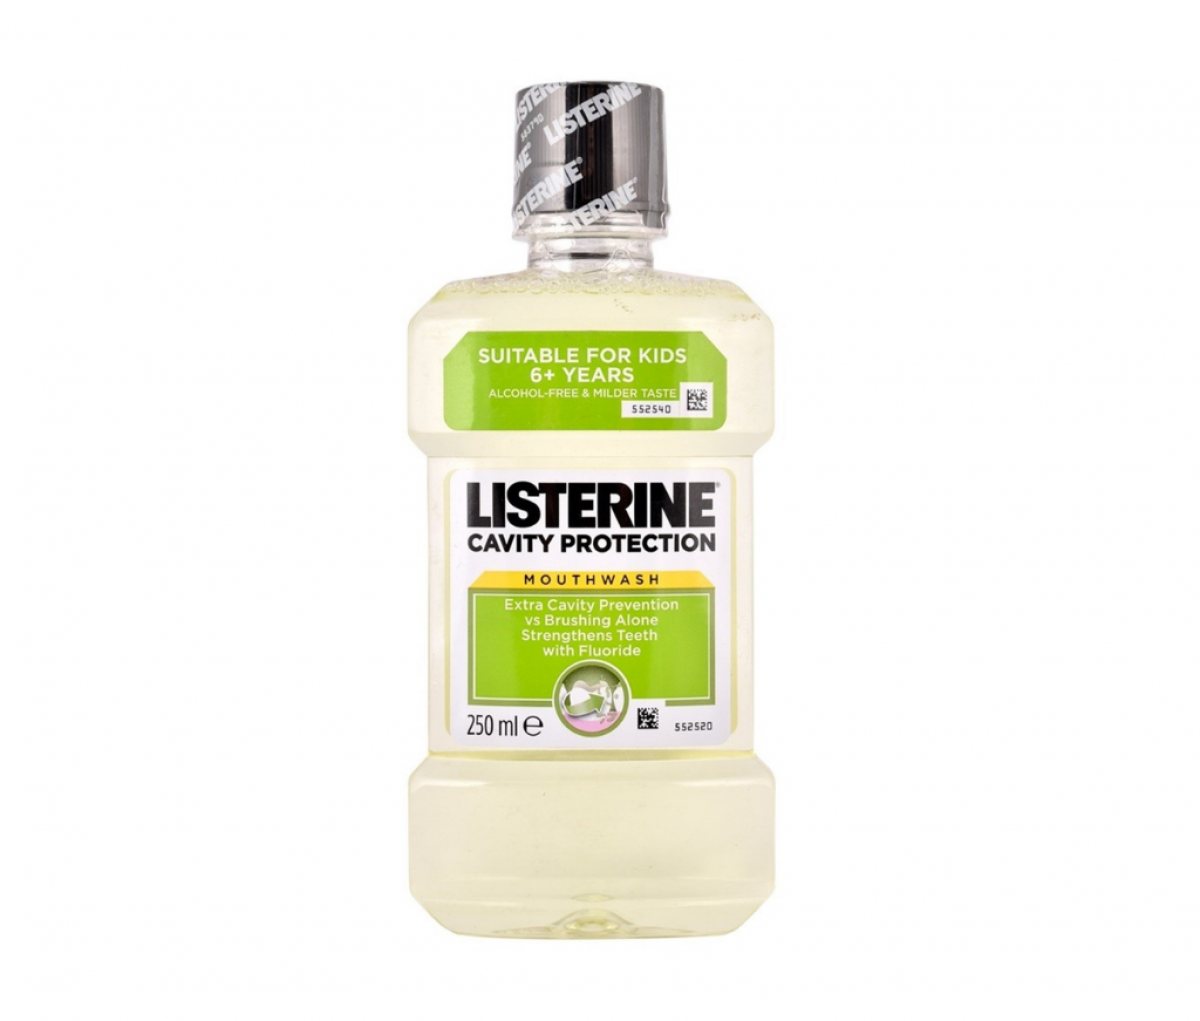 Listerine 250ml Cavity Protection Mouth Wash